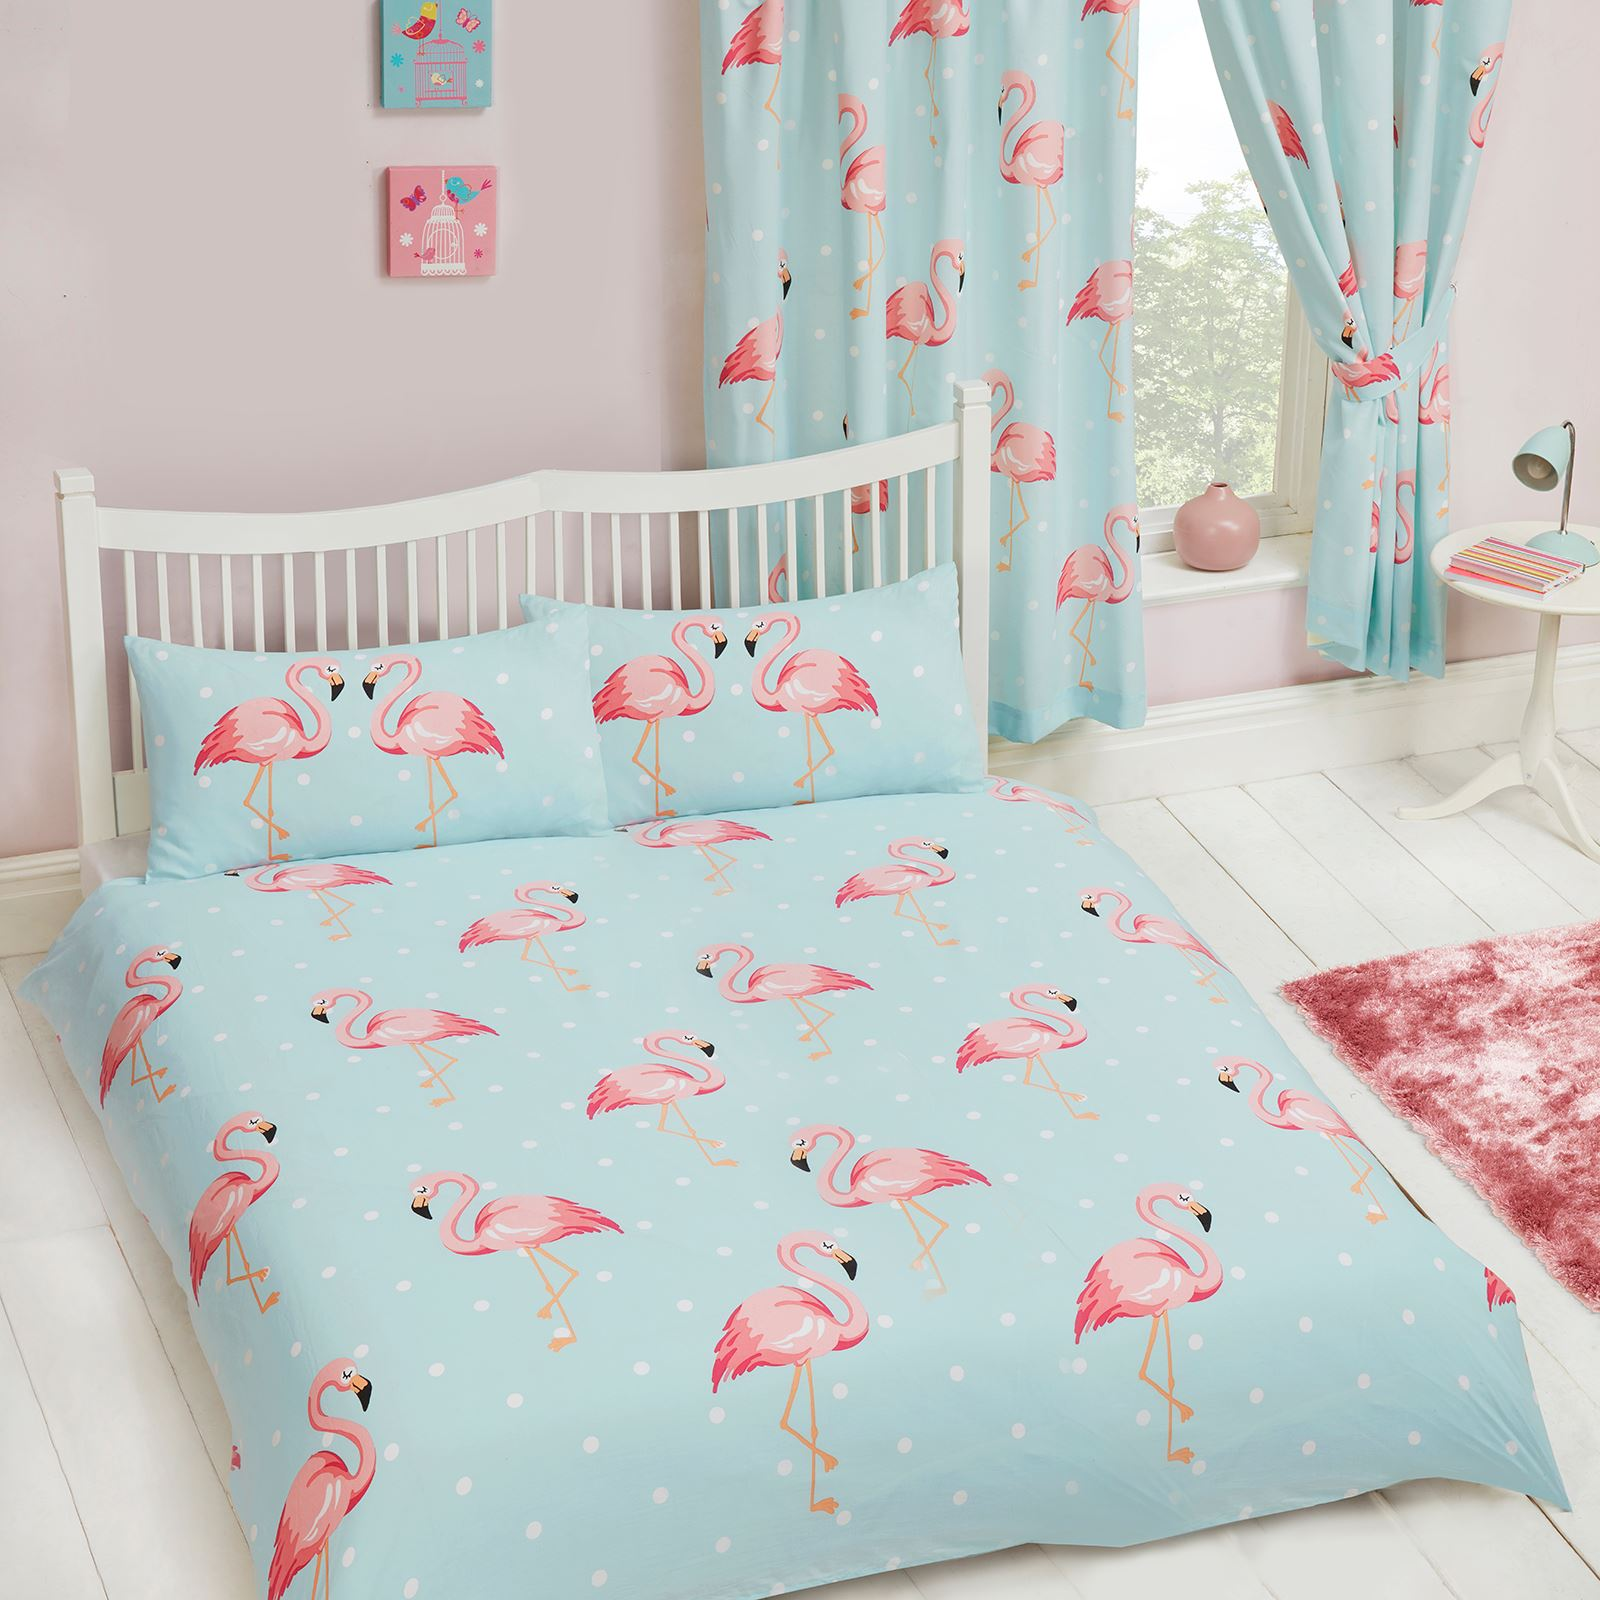 fifi flamant rose chambre gamme set housse de couette simple double rideaux ebay. Black Bedroom Furniture Sets. Home Design Ideas